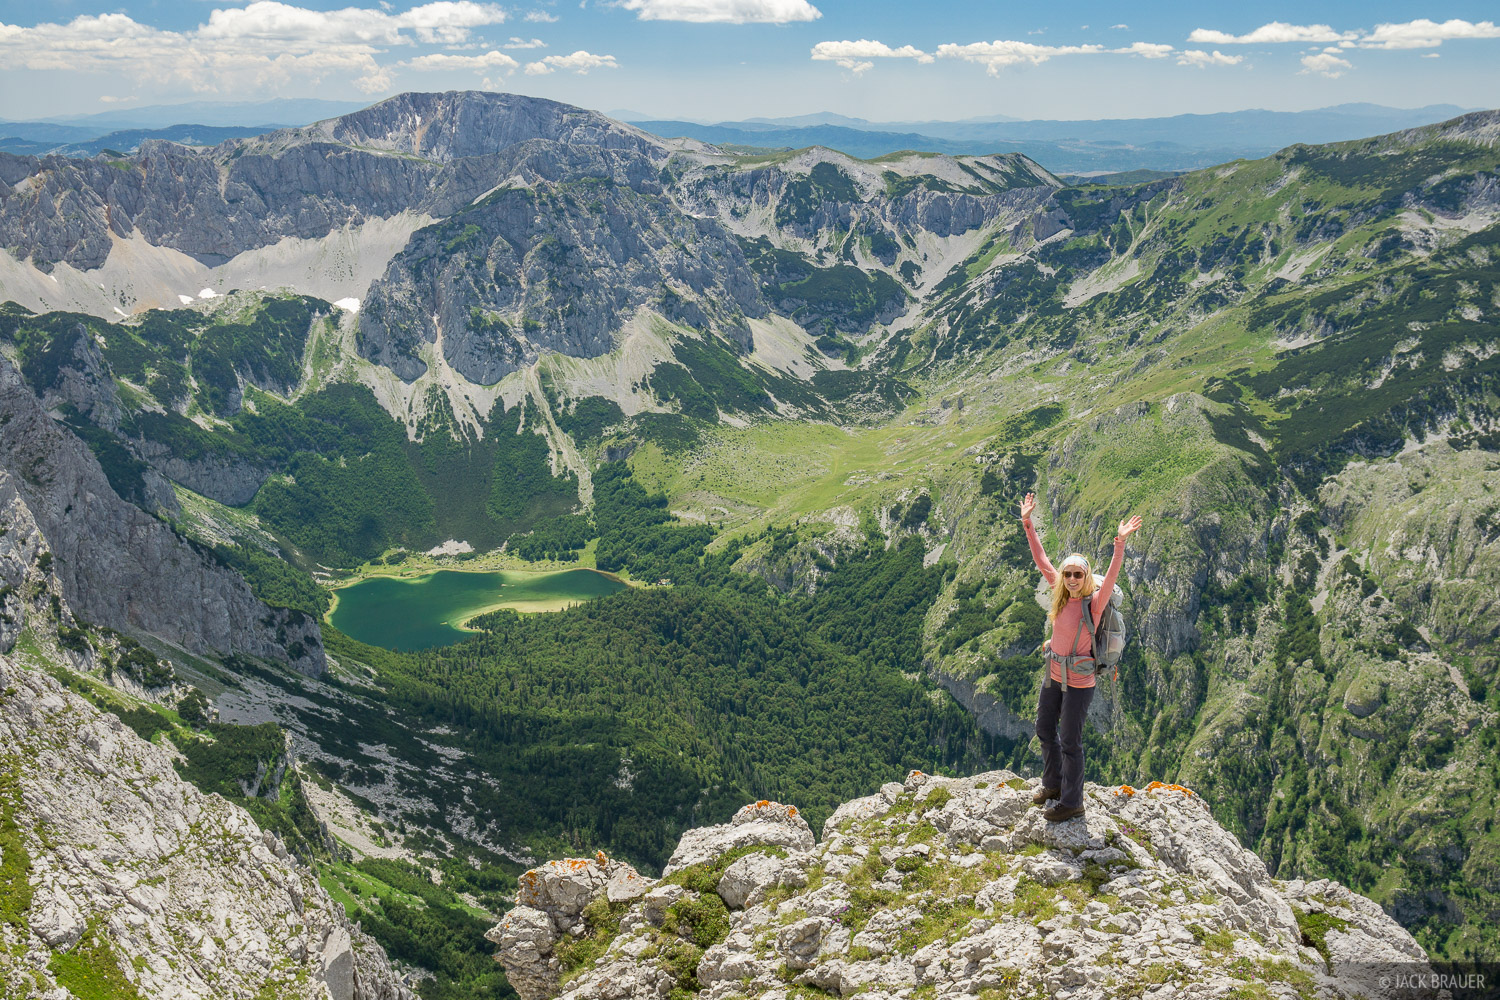 Celebrating the views high above Trnovacko Lake near the border of Bosnia and Montenegro.